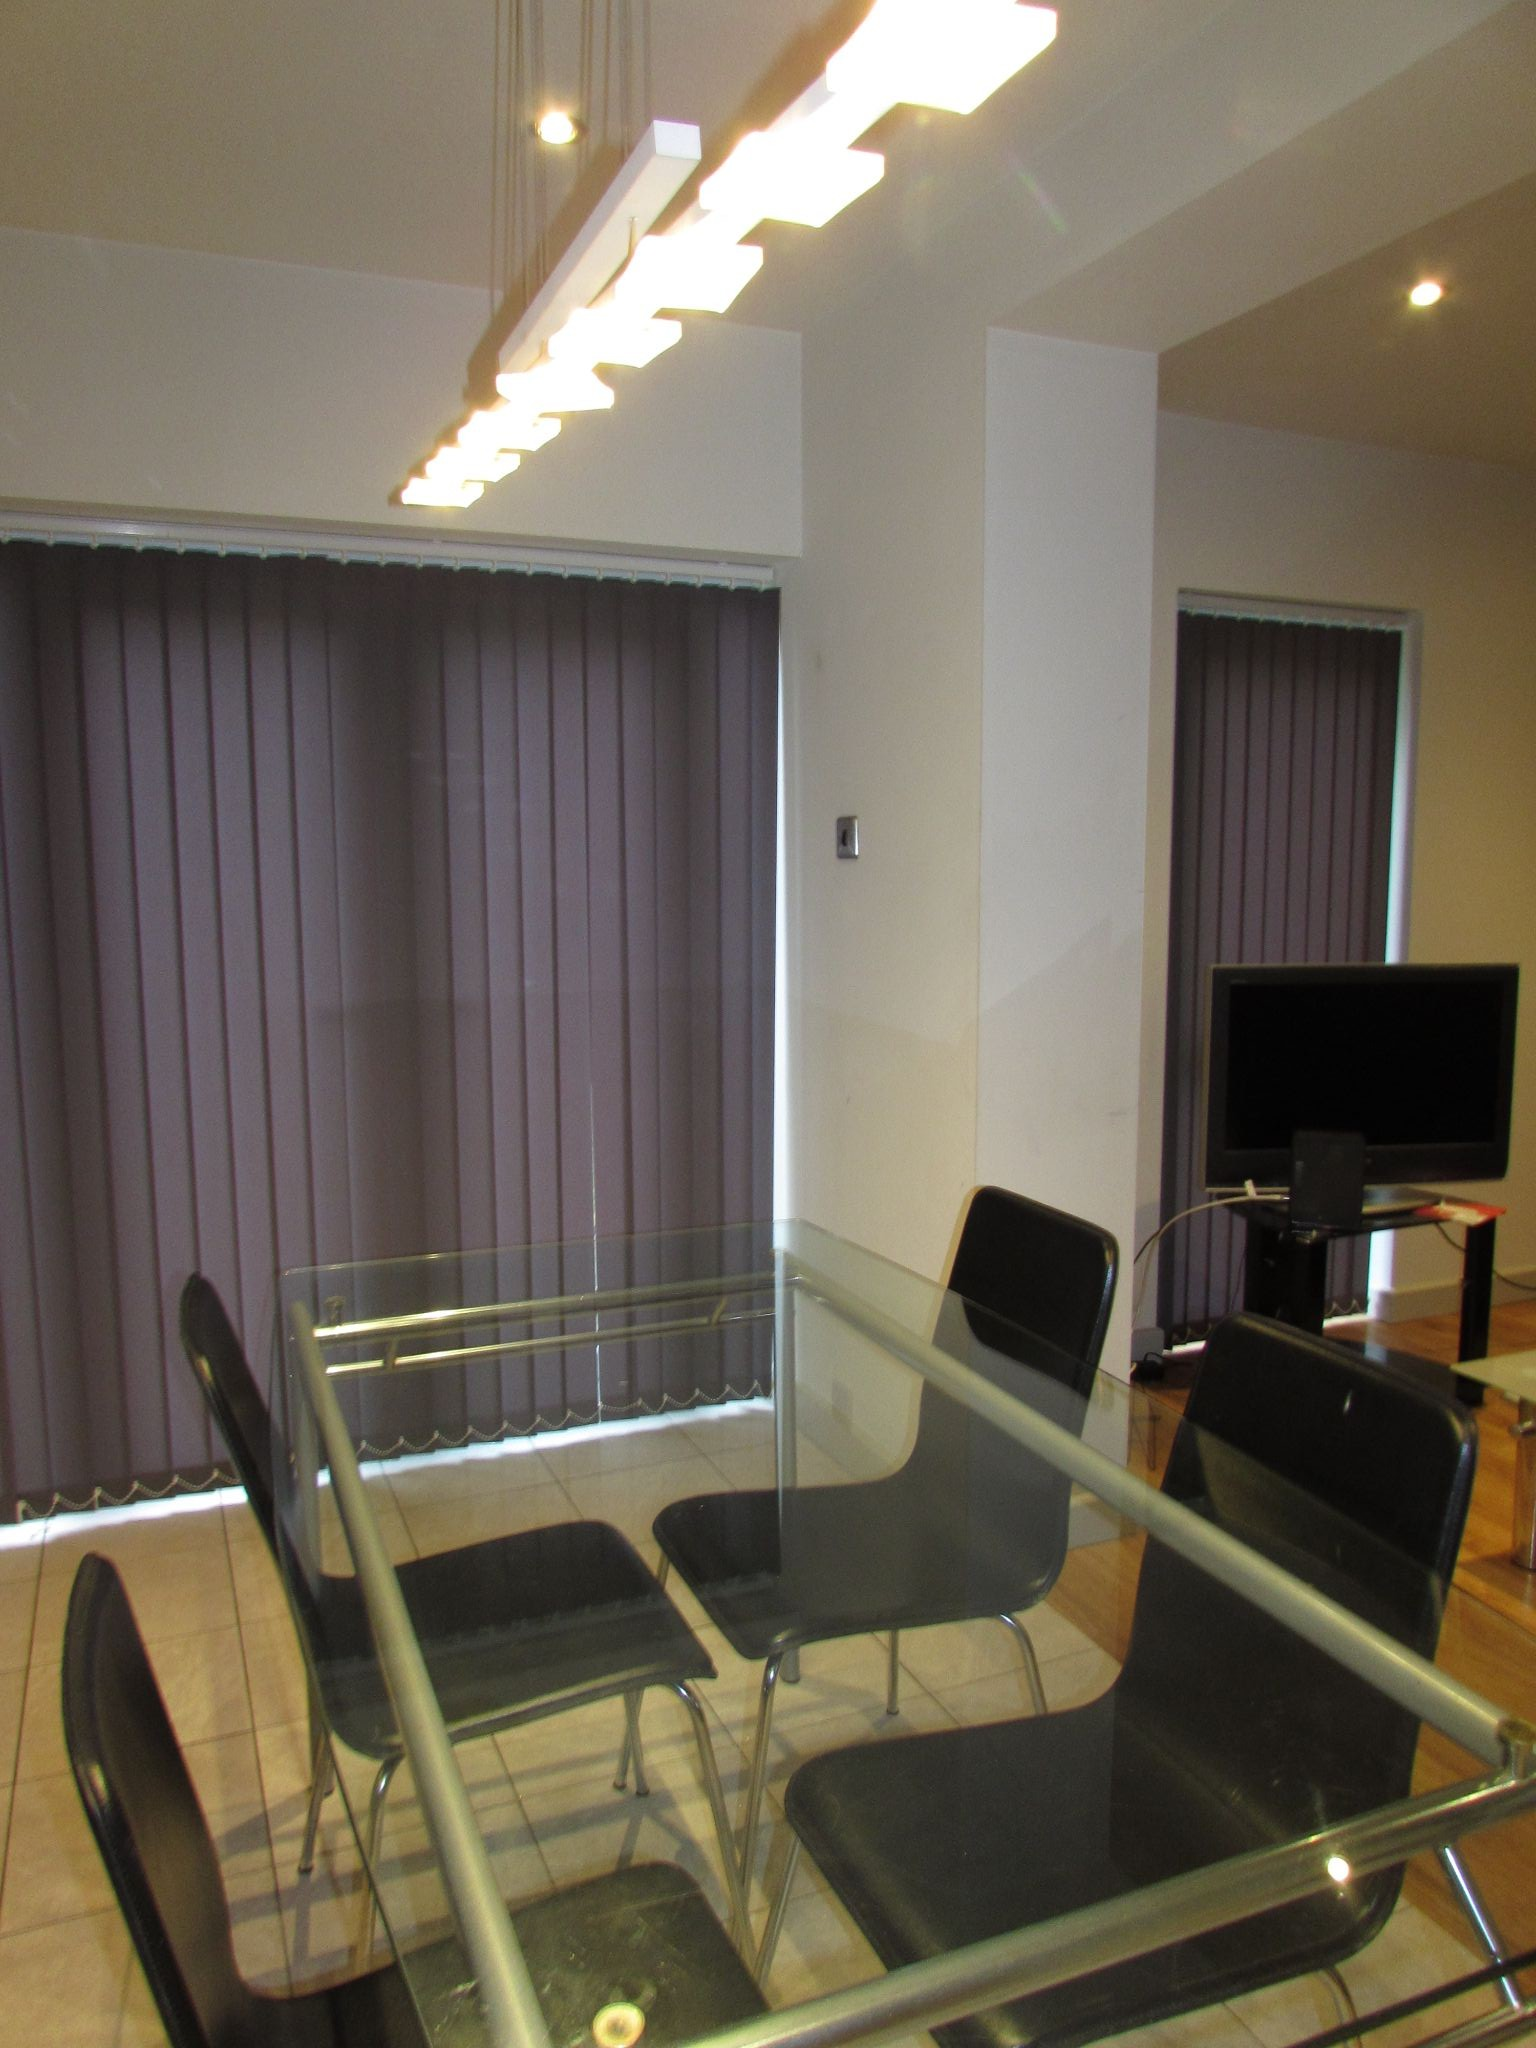 1 Bedroom Shared House To Rent - Photograph 2